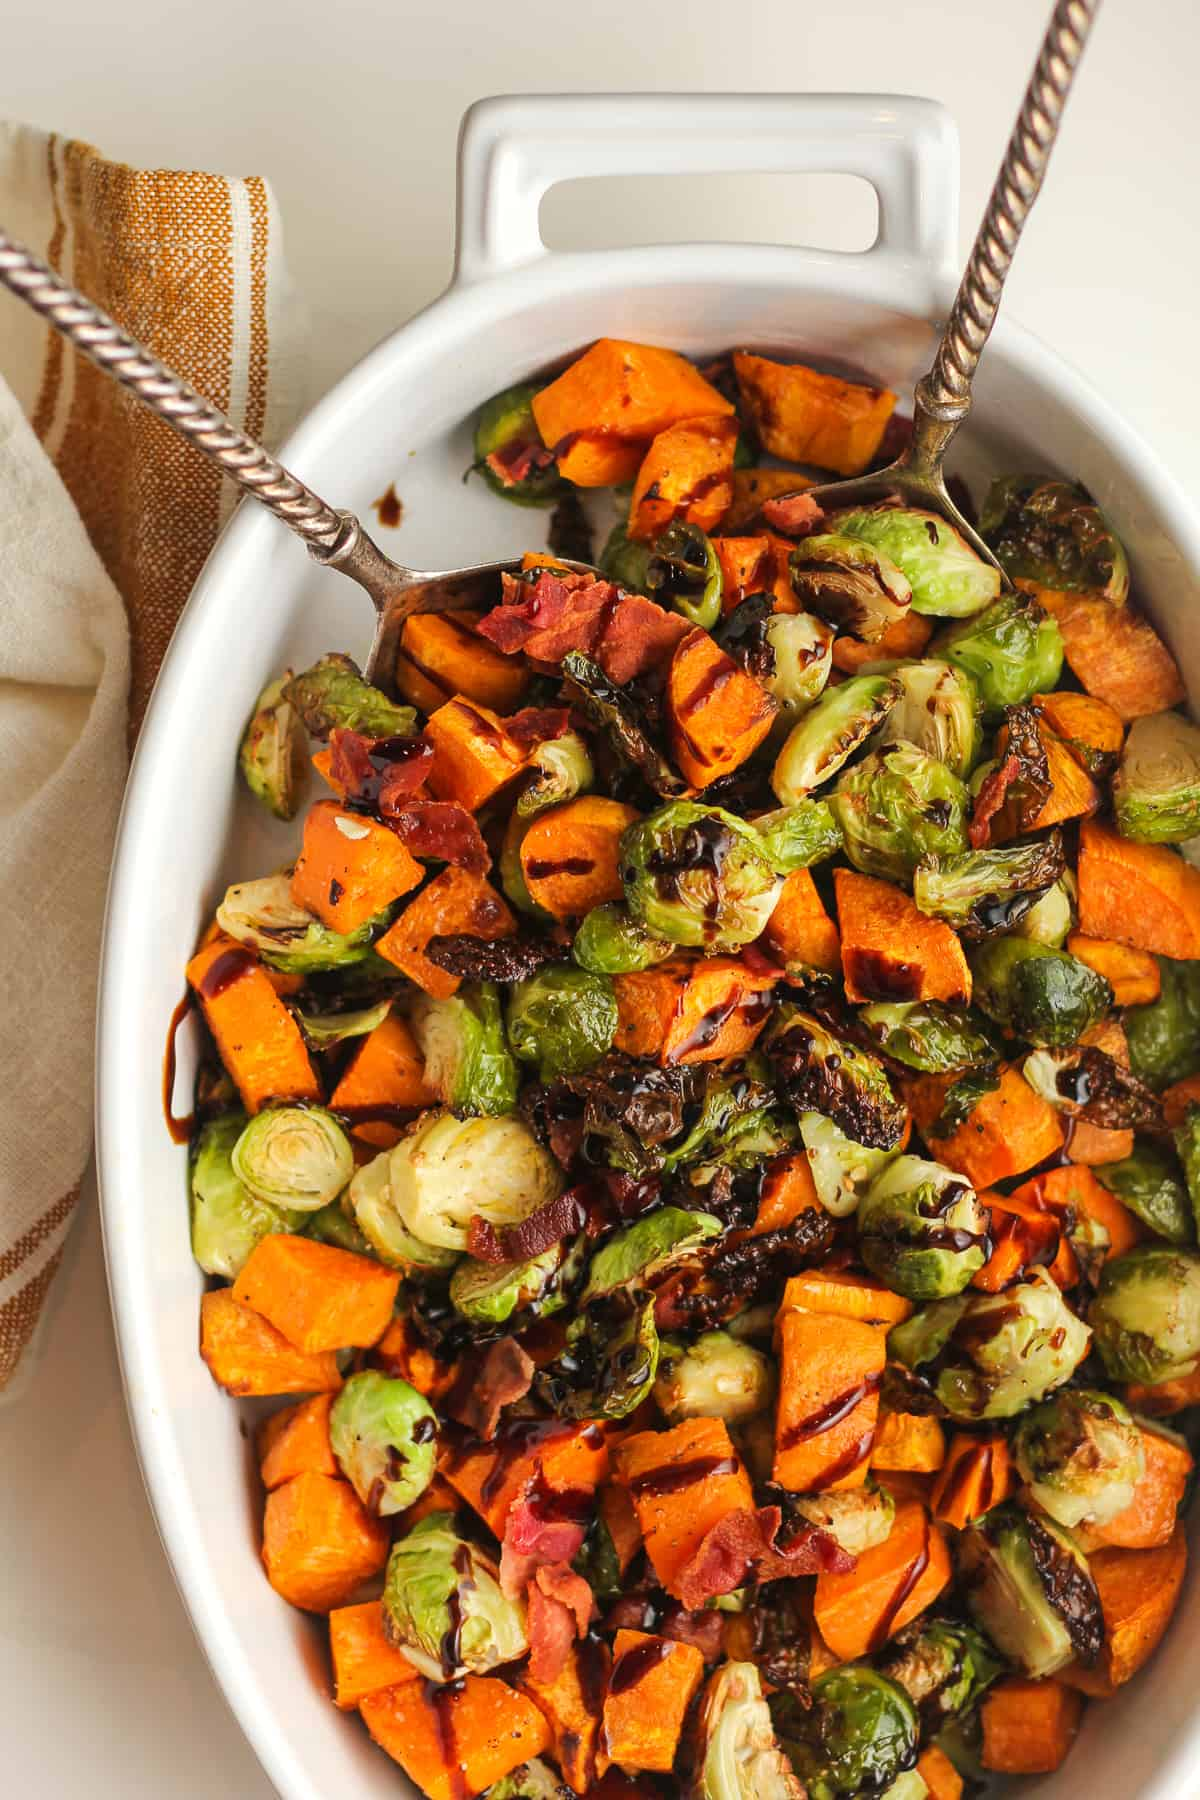 Overhead shot of a dish of balsamic glazed Brussels sprouts and sweet potatoes.